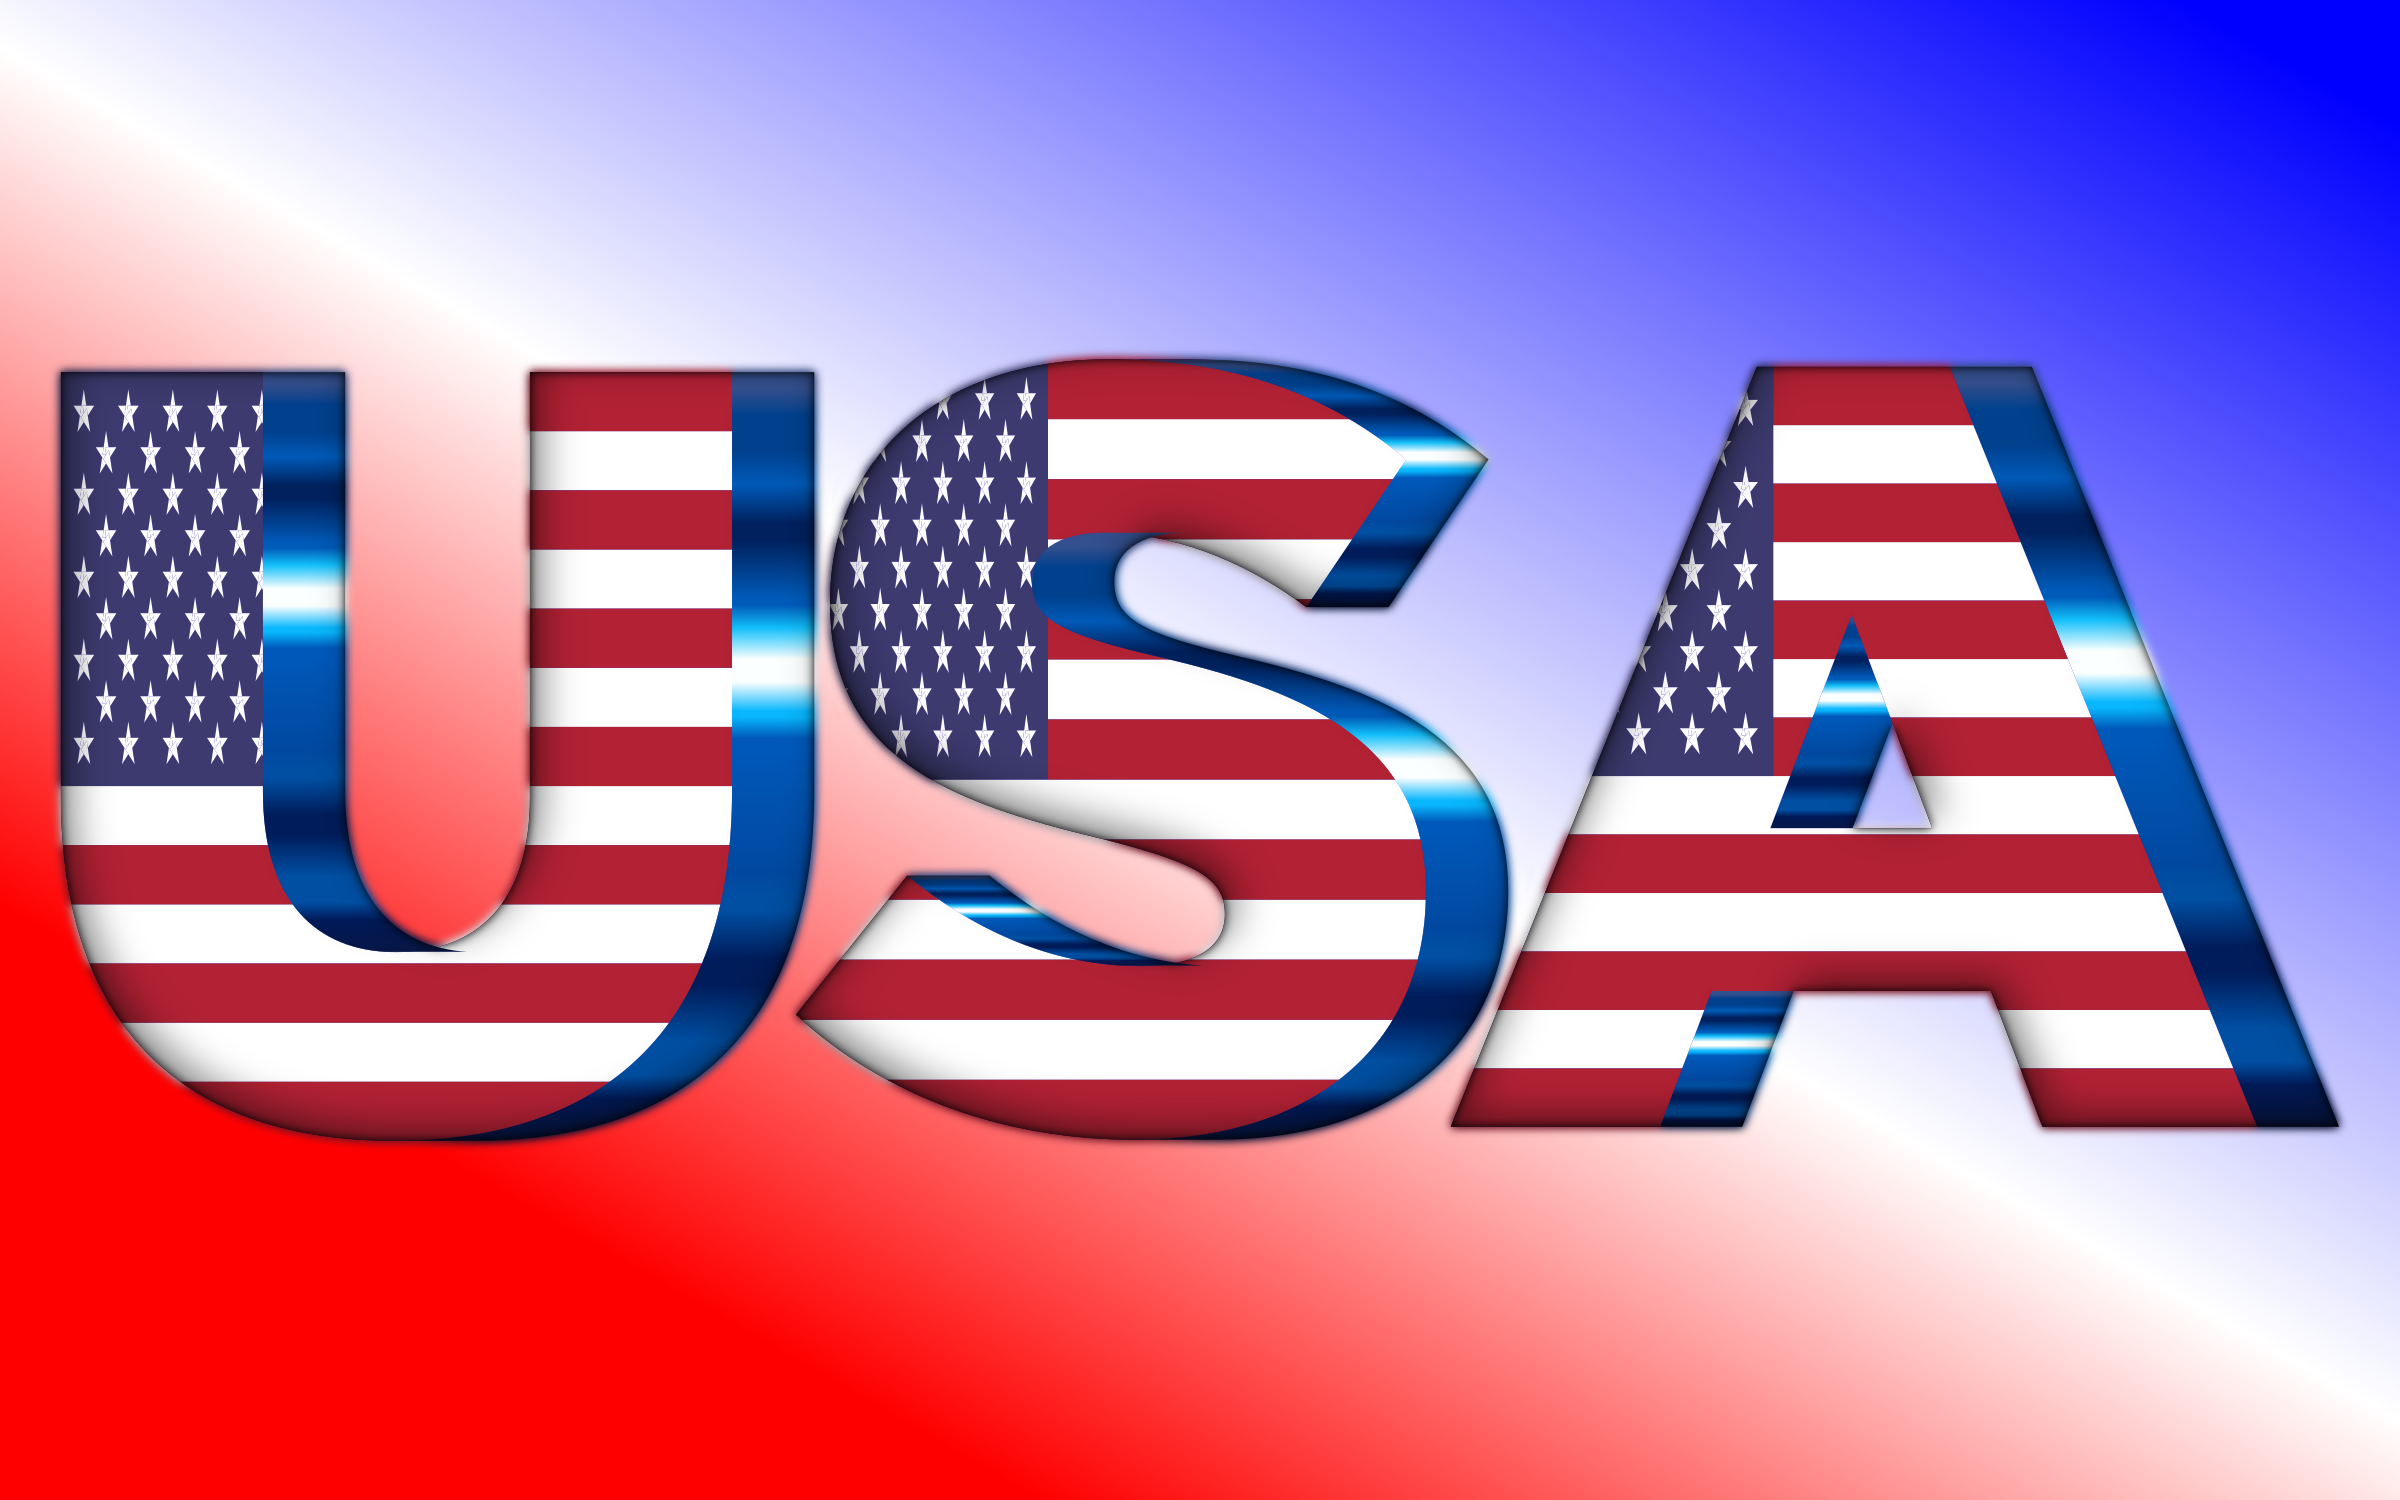 USA Flag Typography by GDJ